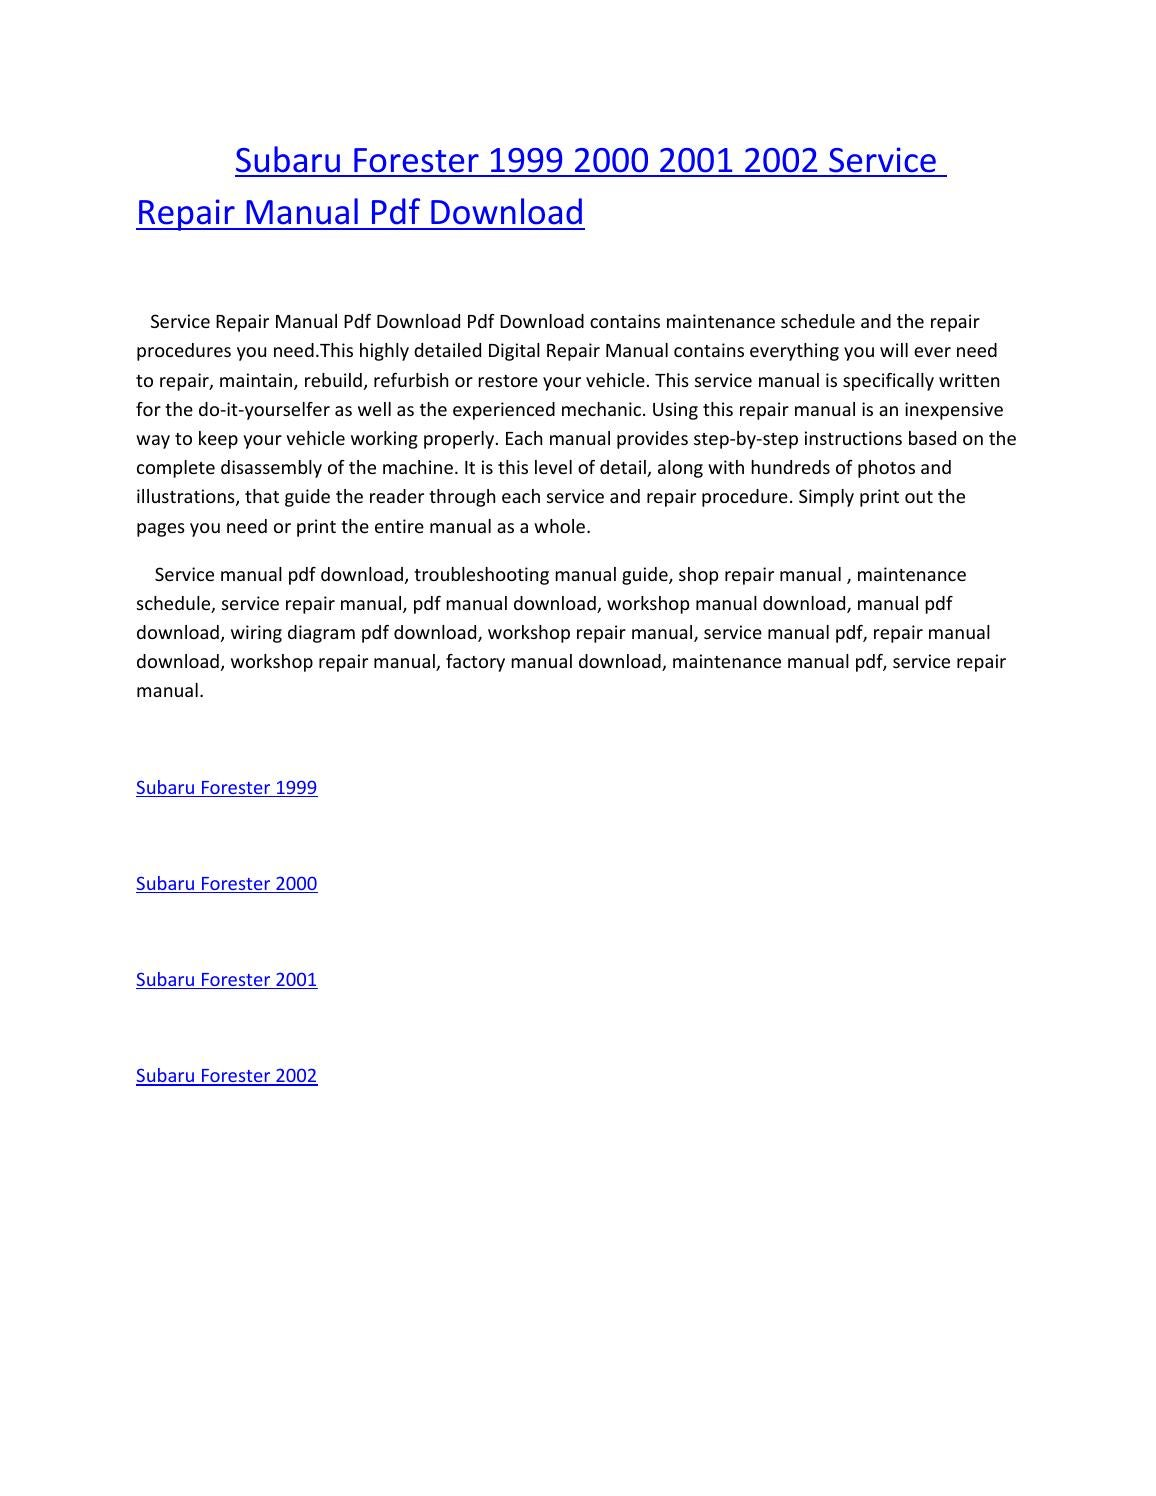 Subaru forester 1999 2000 2001 2002 service repair manual pdf download by  amurgului - issuu